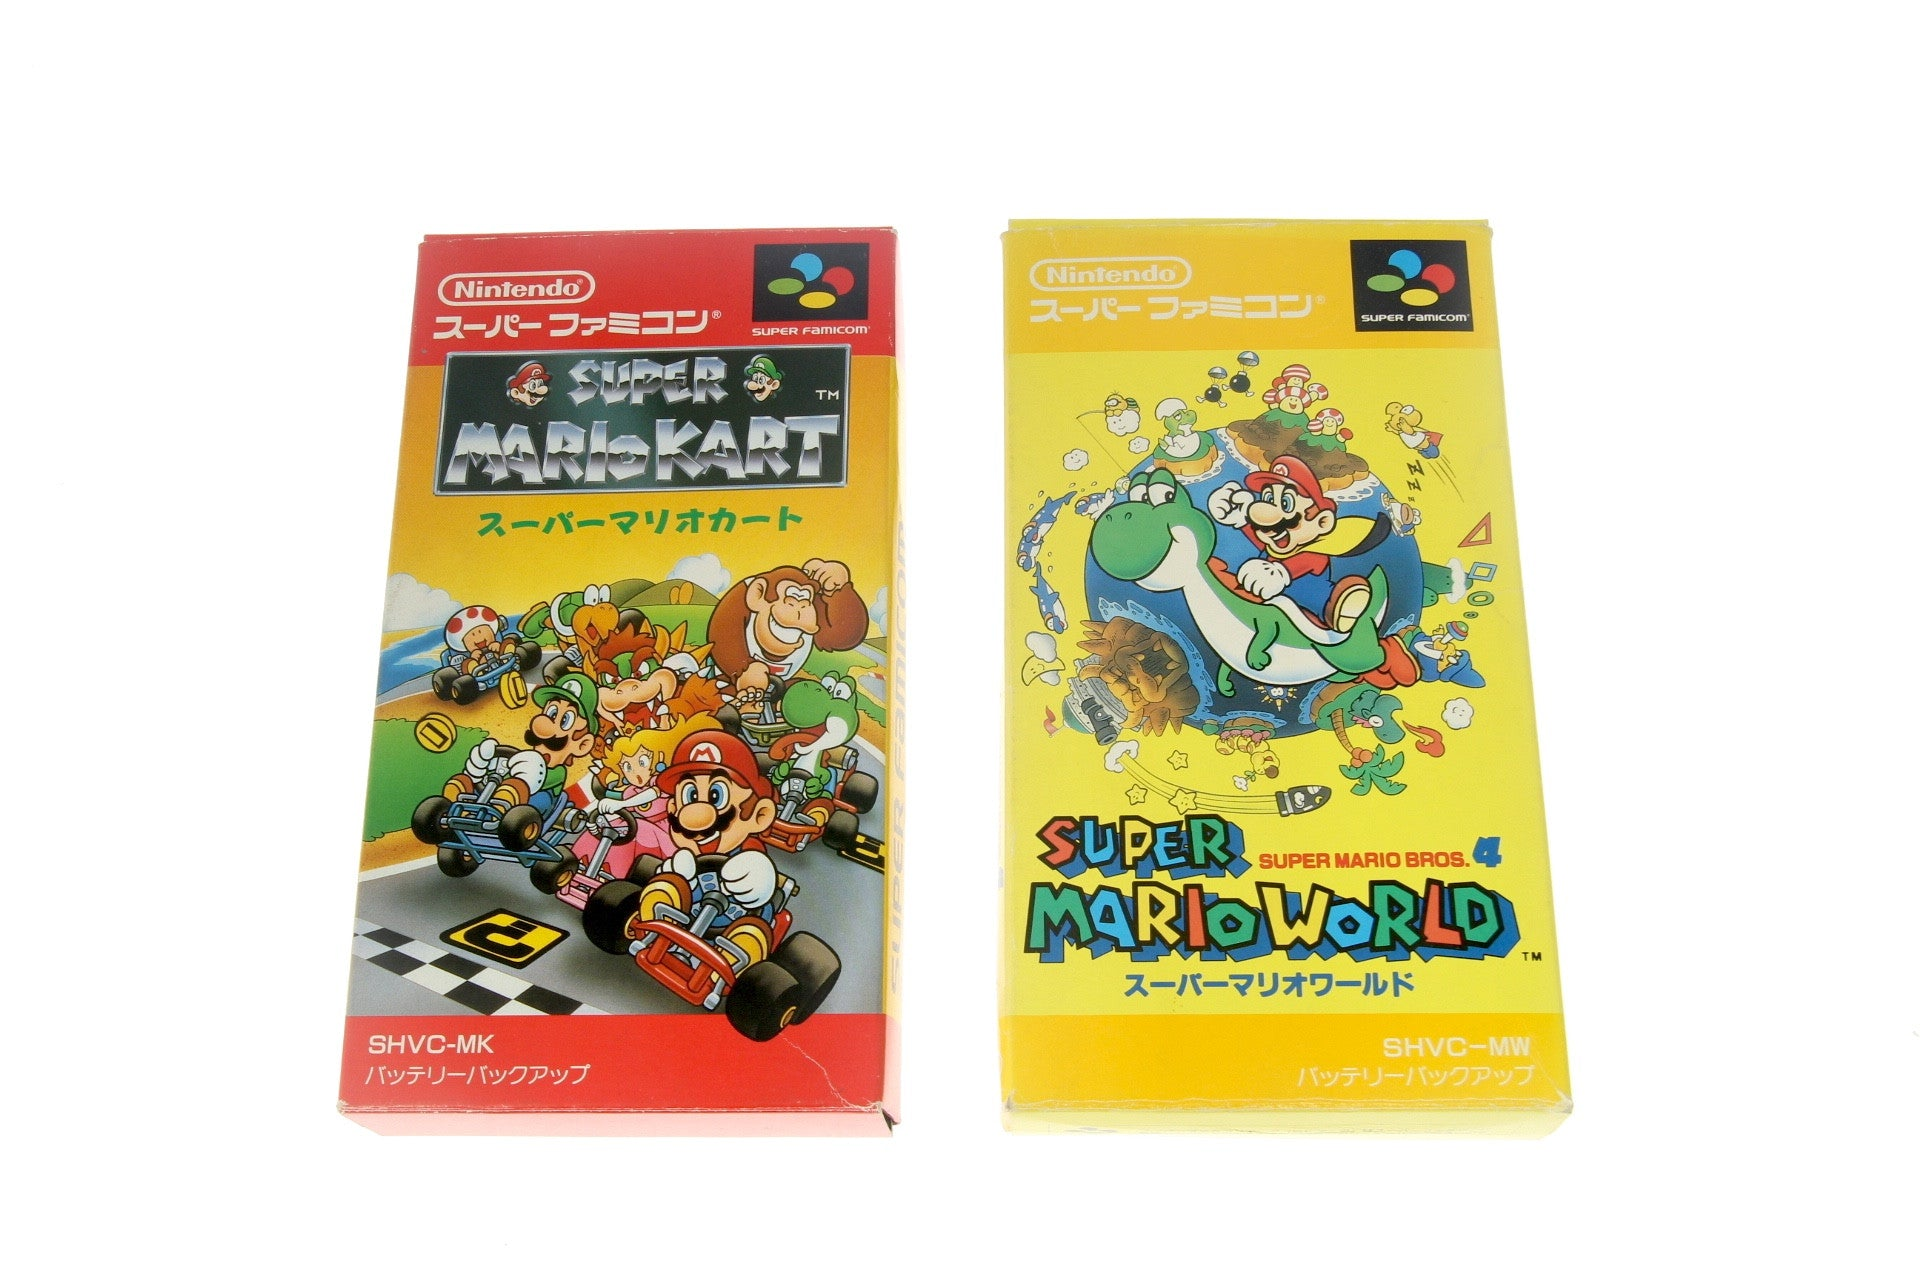 Image 1 for Super Famicom Classics Bundle - Super Mario